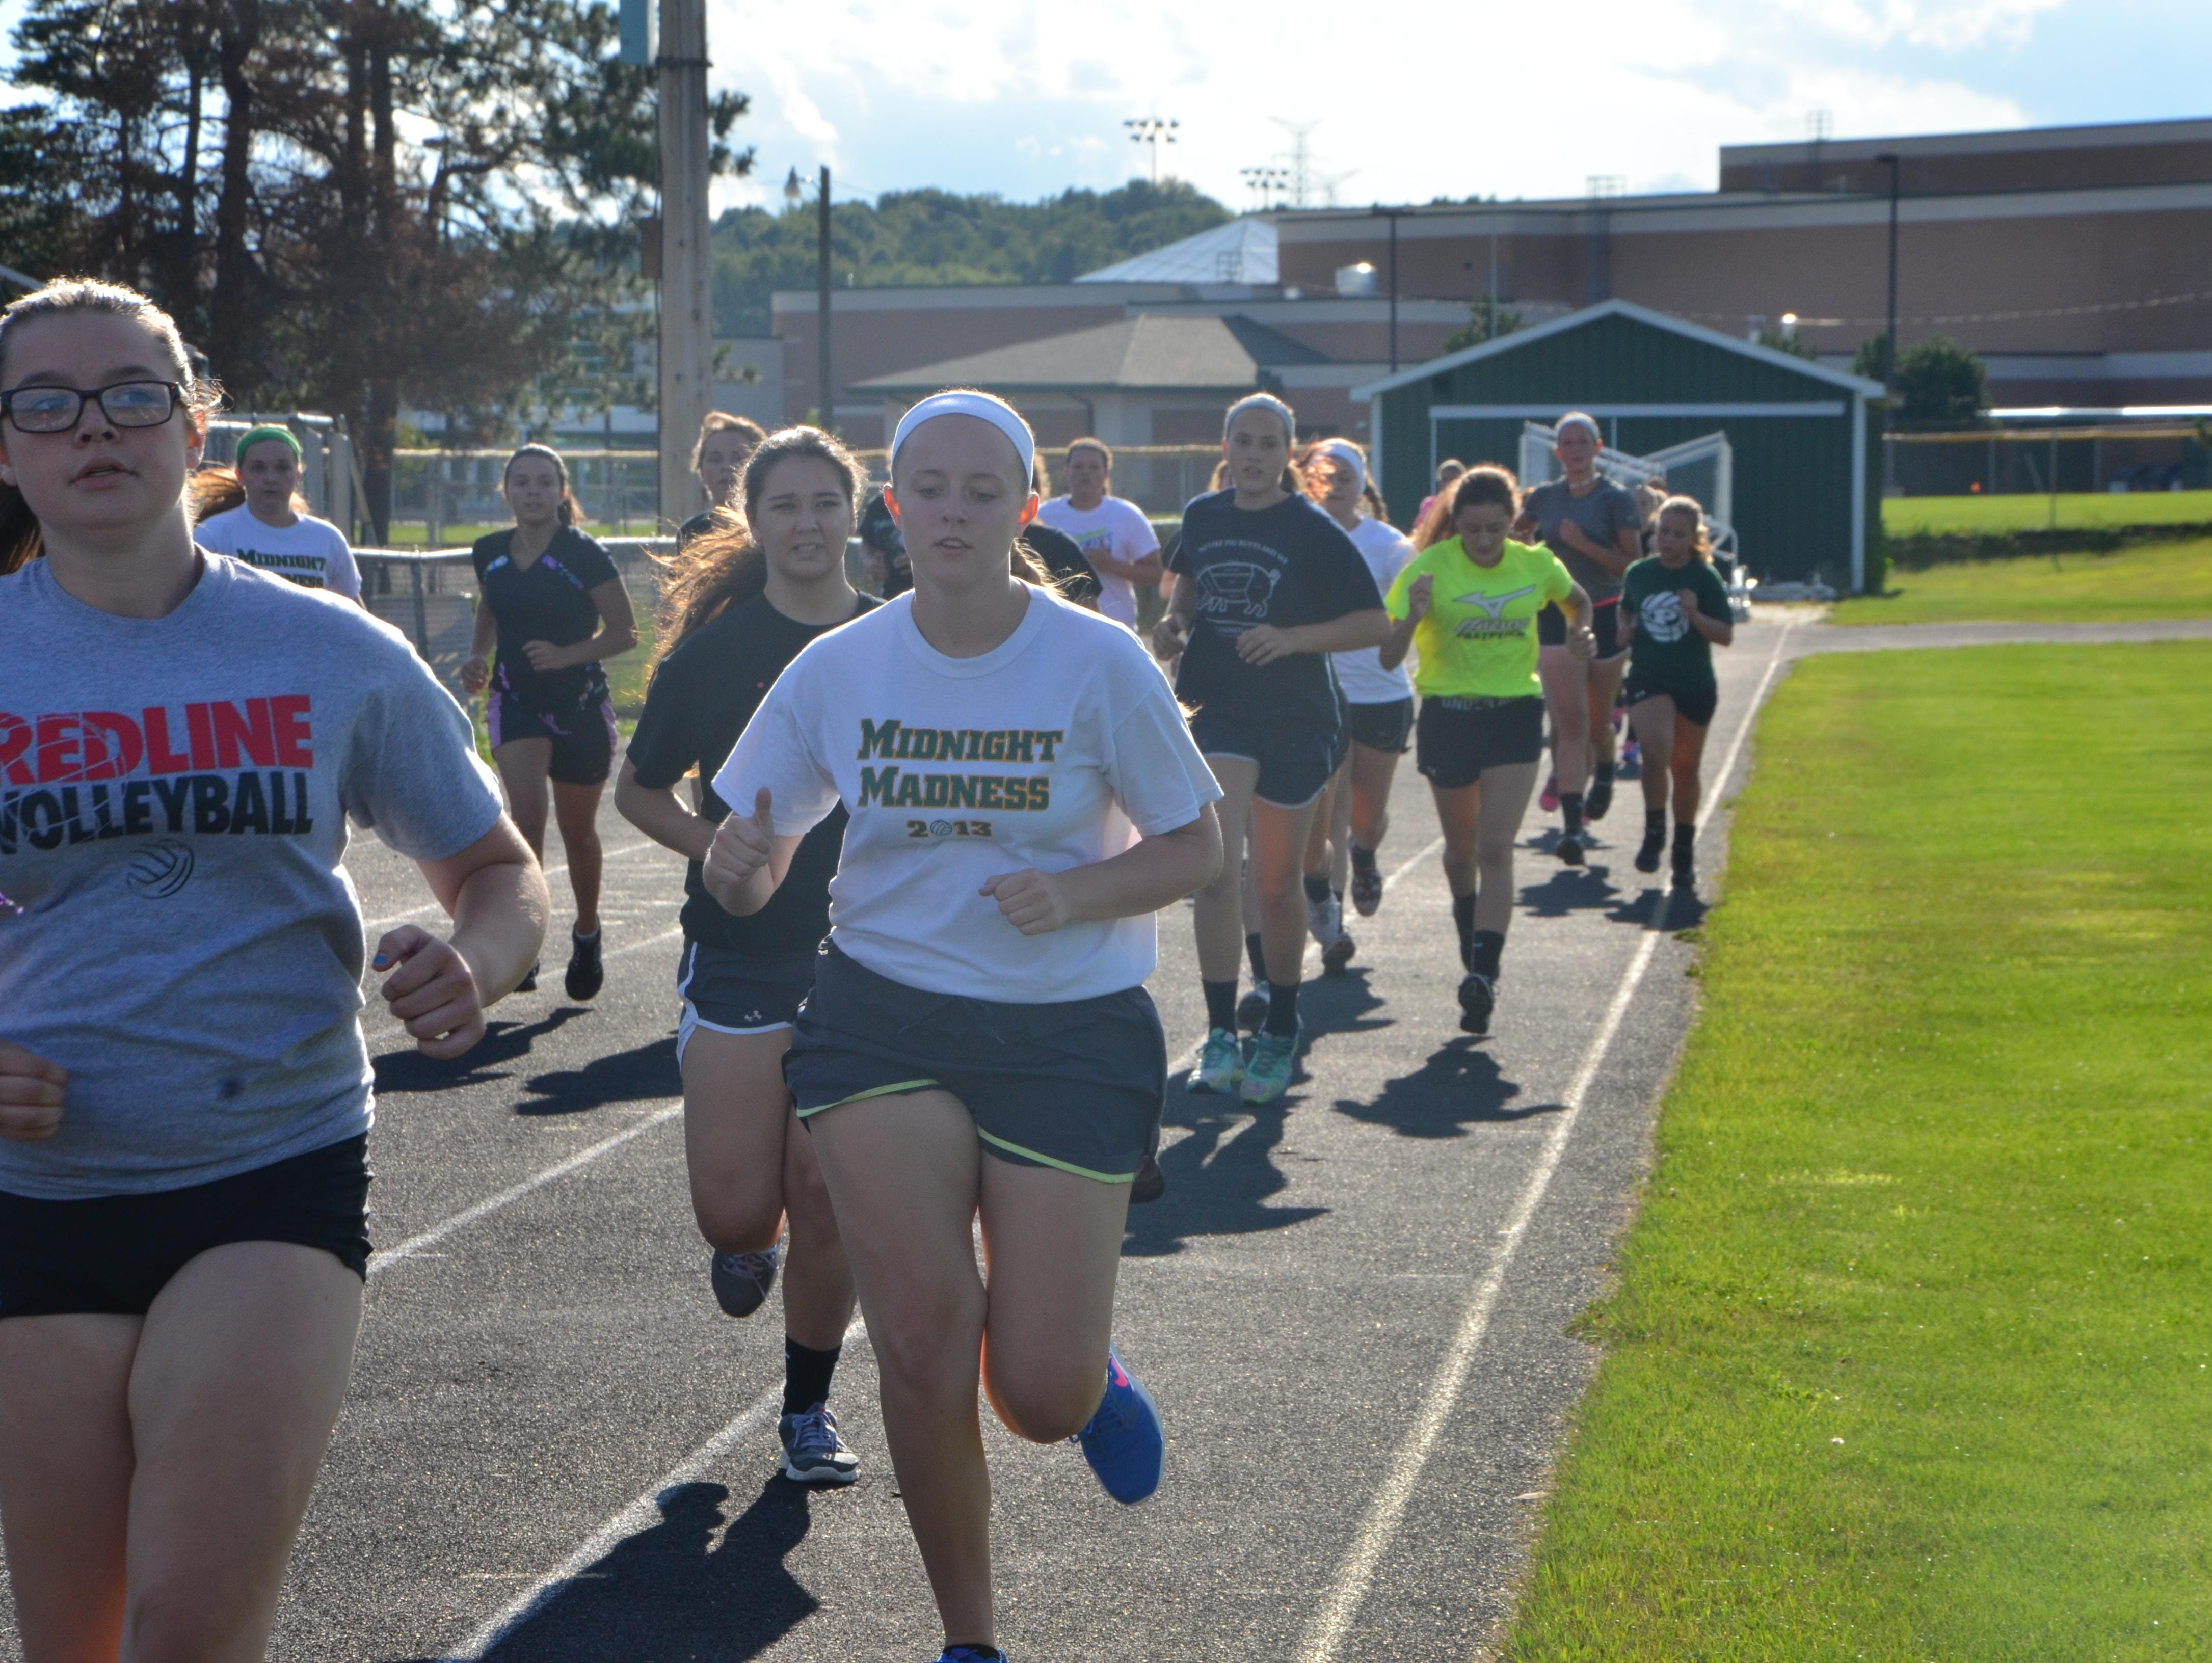 The Pennfield volleyball team runs the track during the first practice of the season on Wednesday.